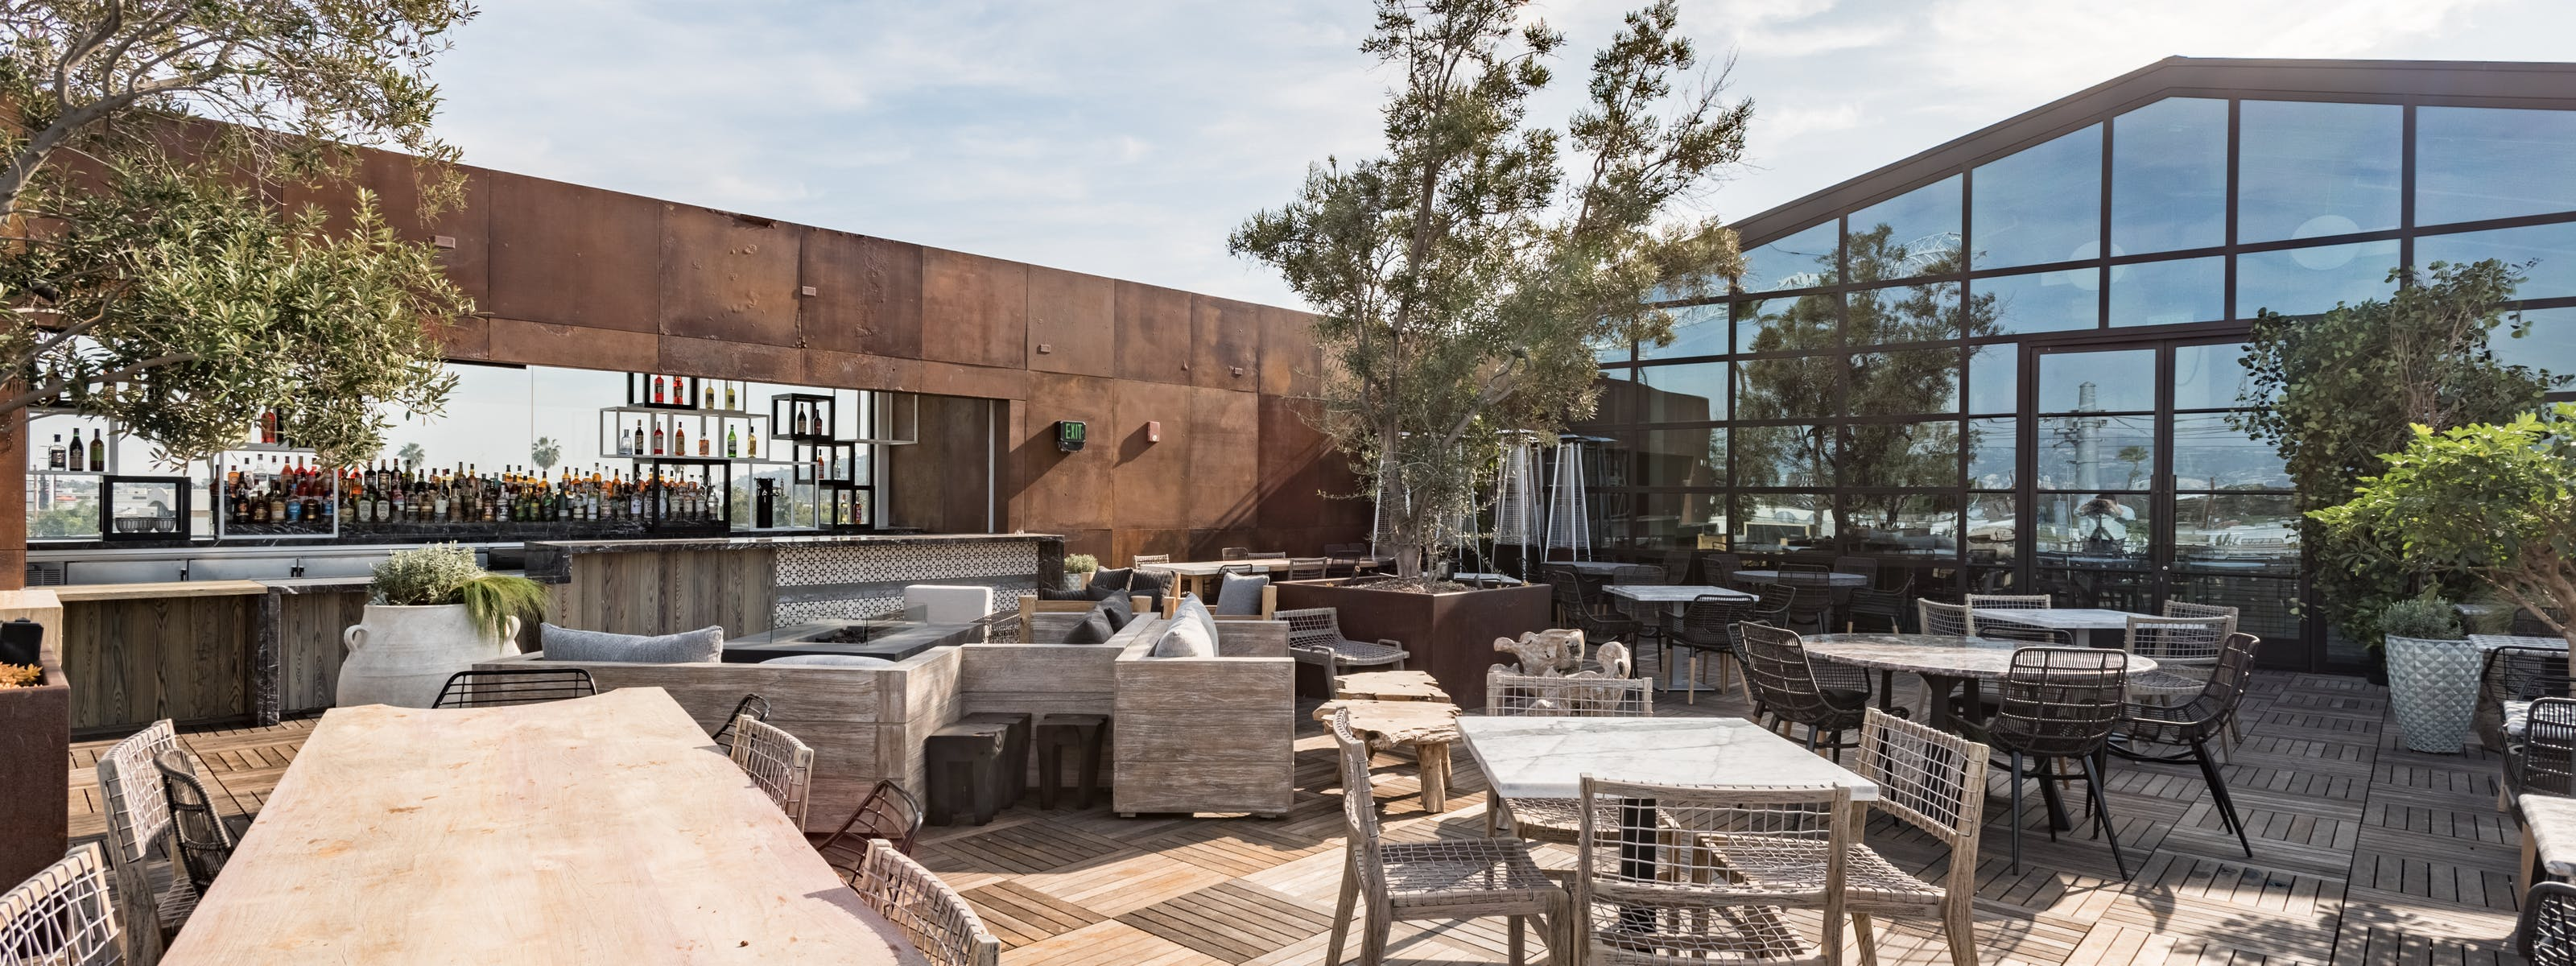 18 LA Restaurants With Great Views - Los Angeles - The Infatuation